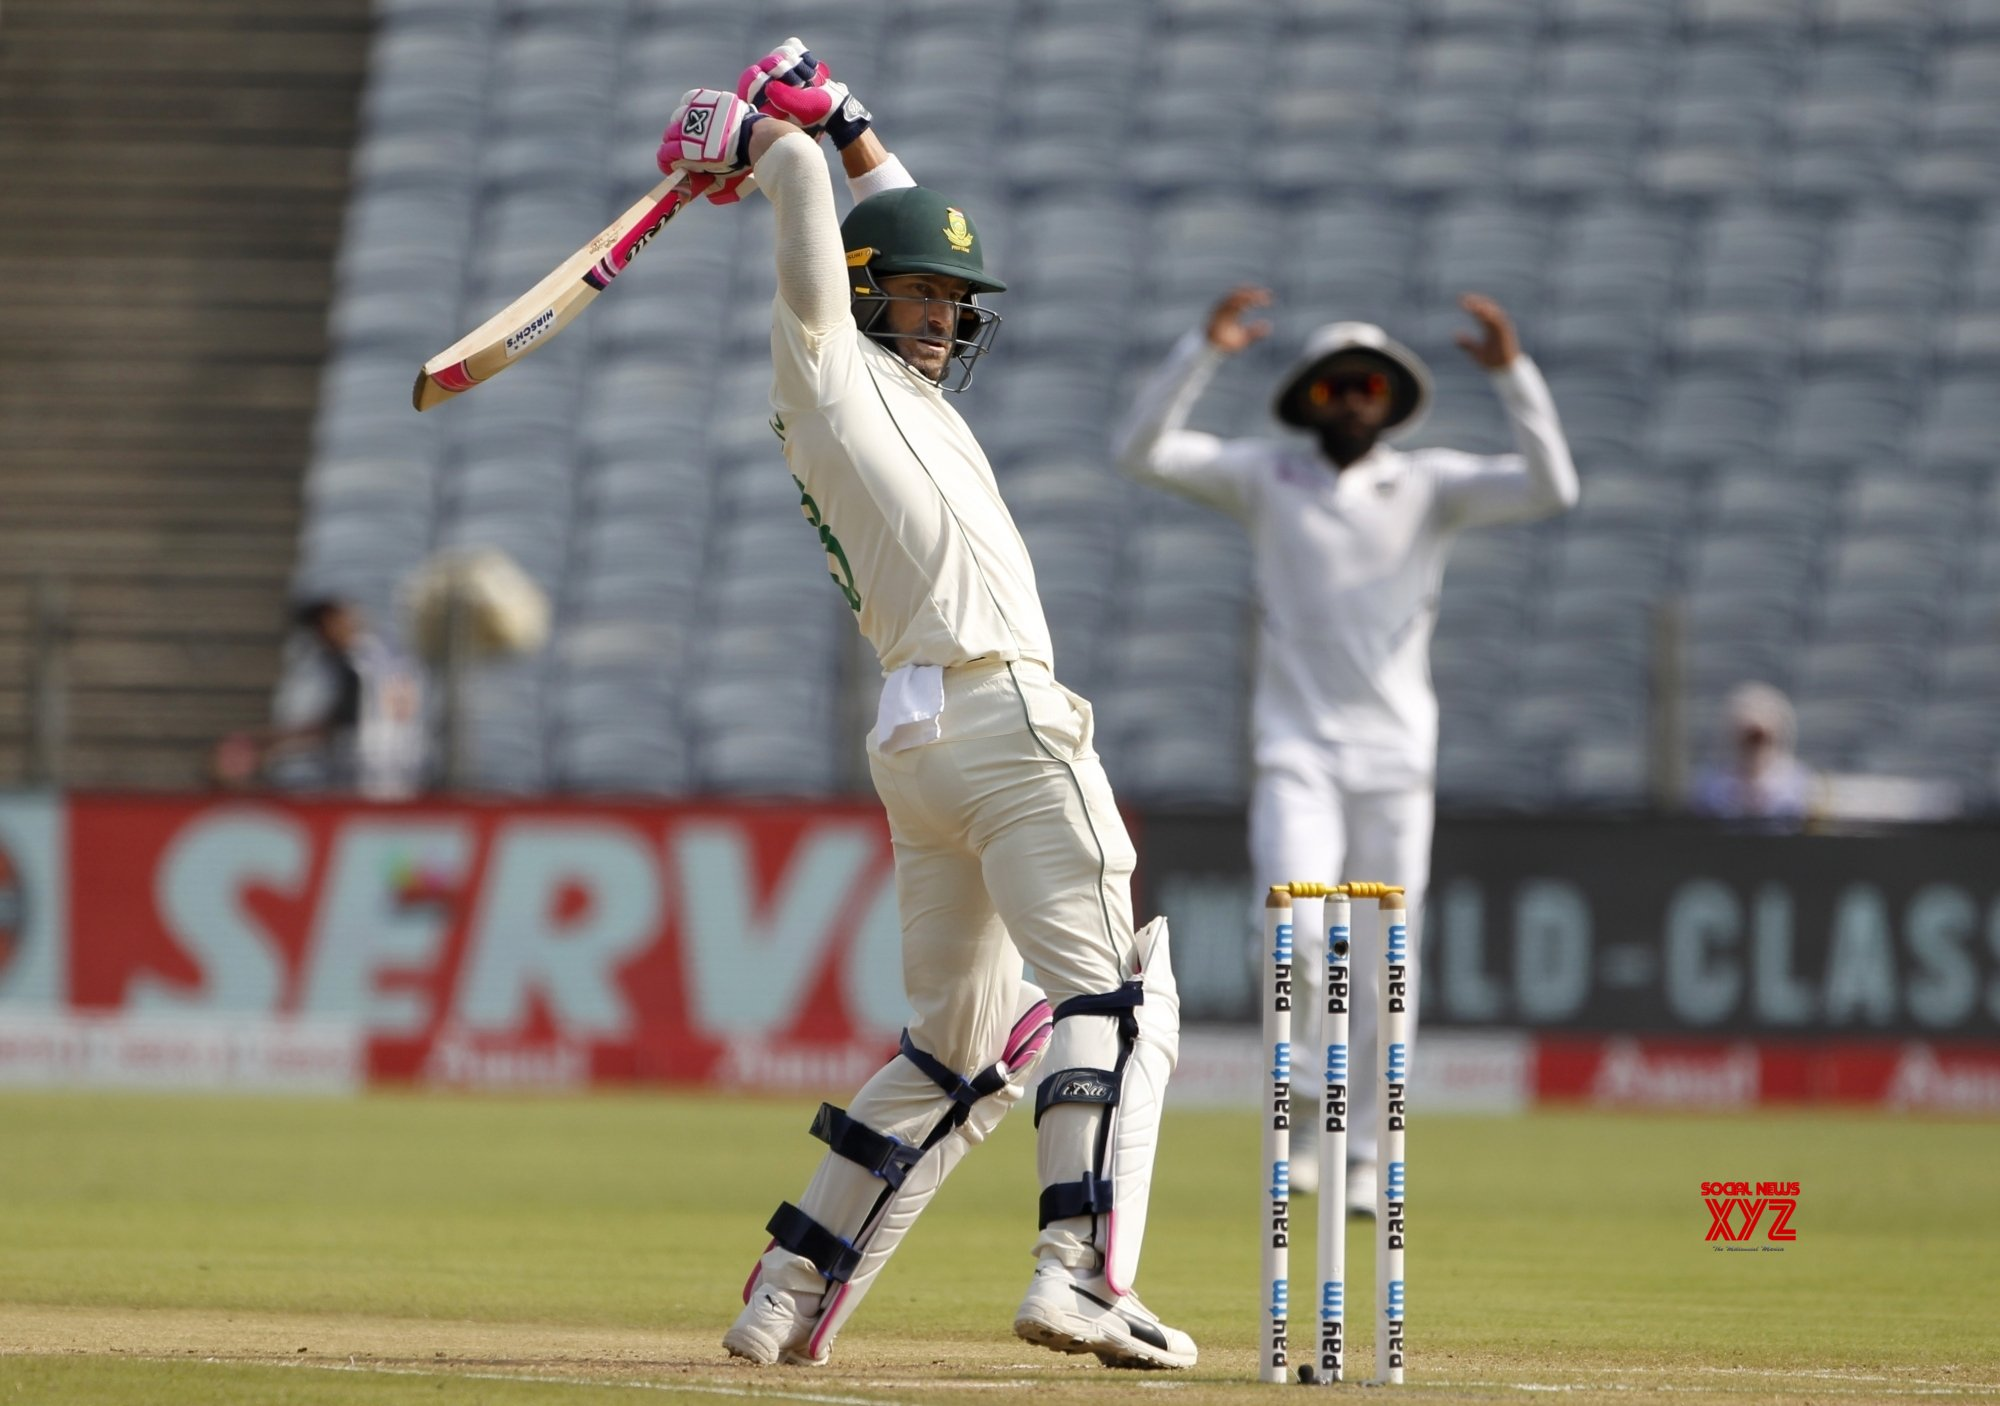 Pune: 2nd Test - India Vs South Africa - Day 3 (Batch - 3) #Gallery